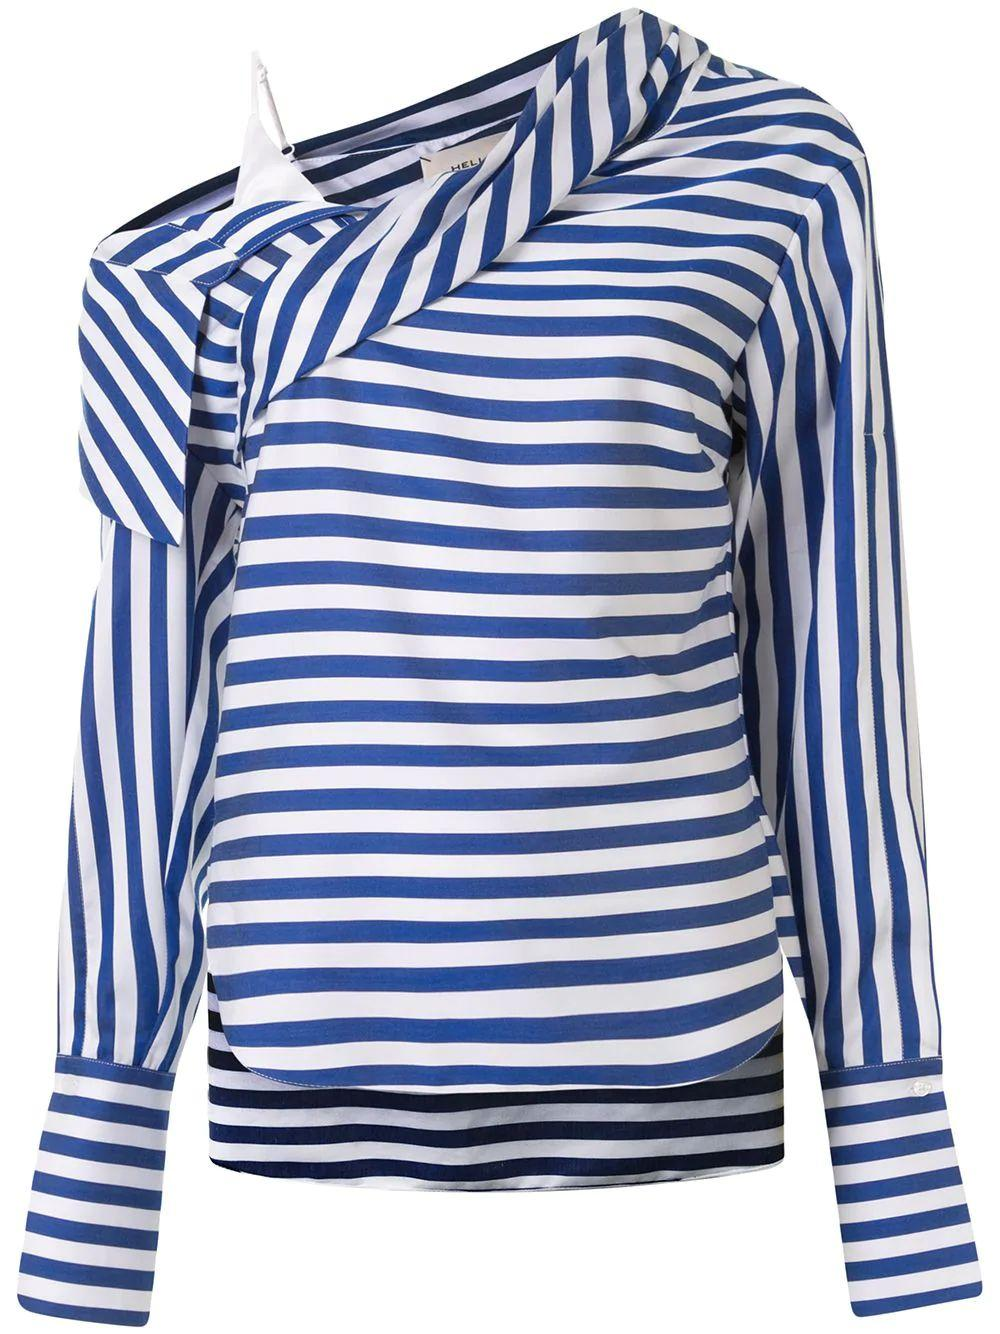 Stellars Striped Cotton Sateen Blouse Item # HS20T263-35